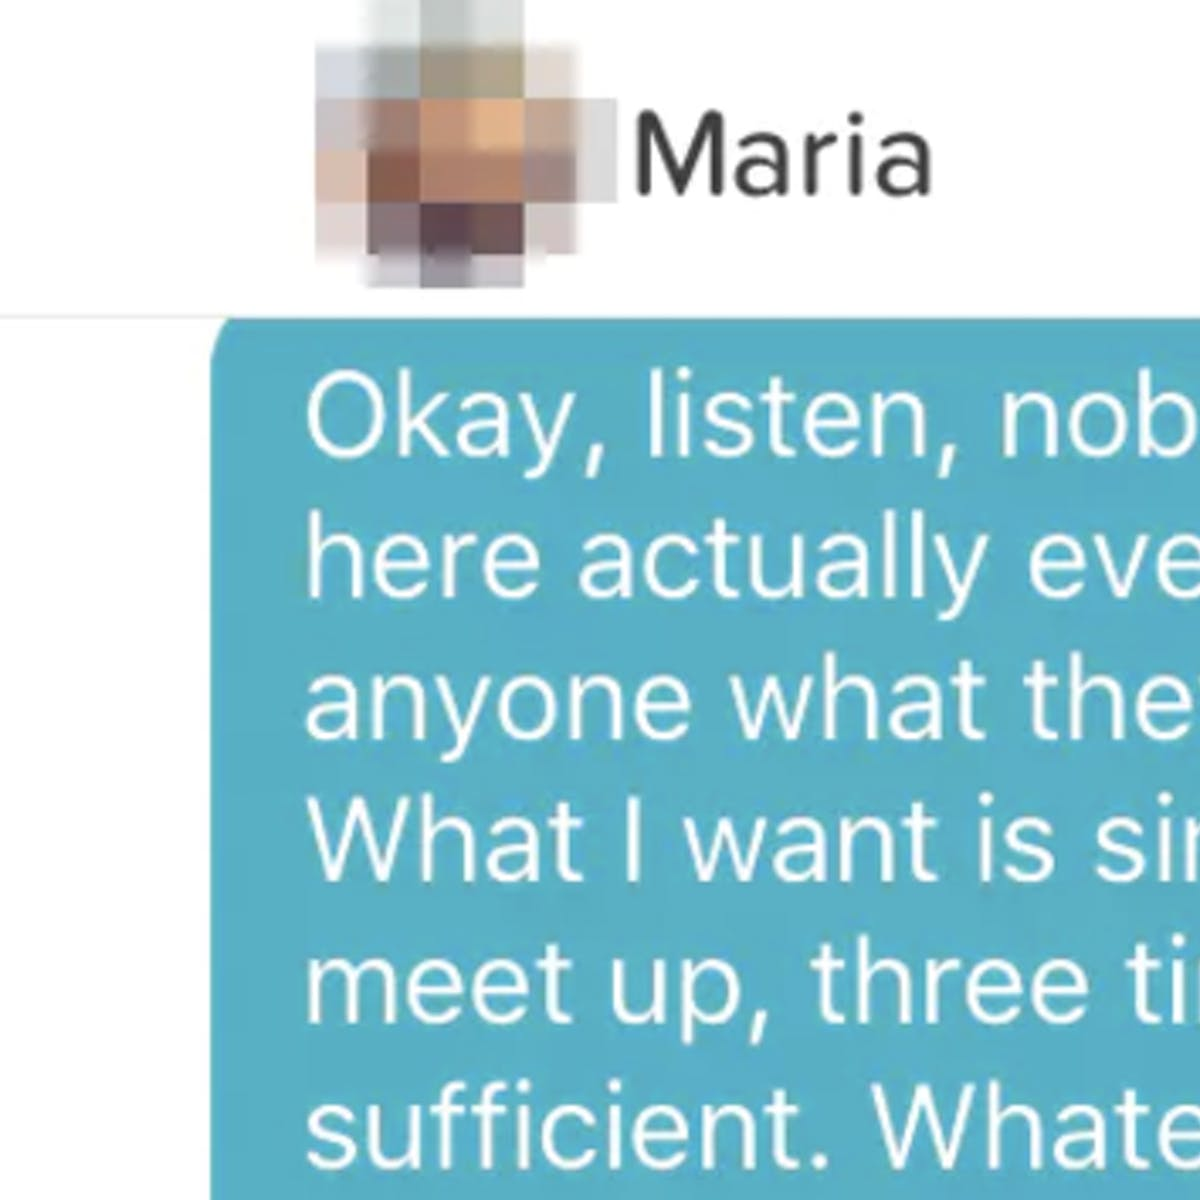 The Best Tinder Pick-up Lines and Openers Collected from